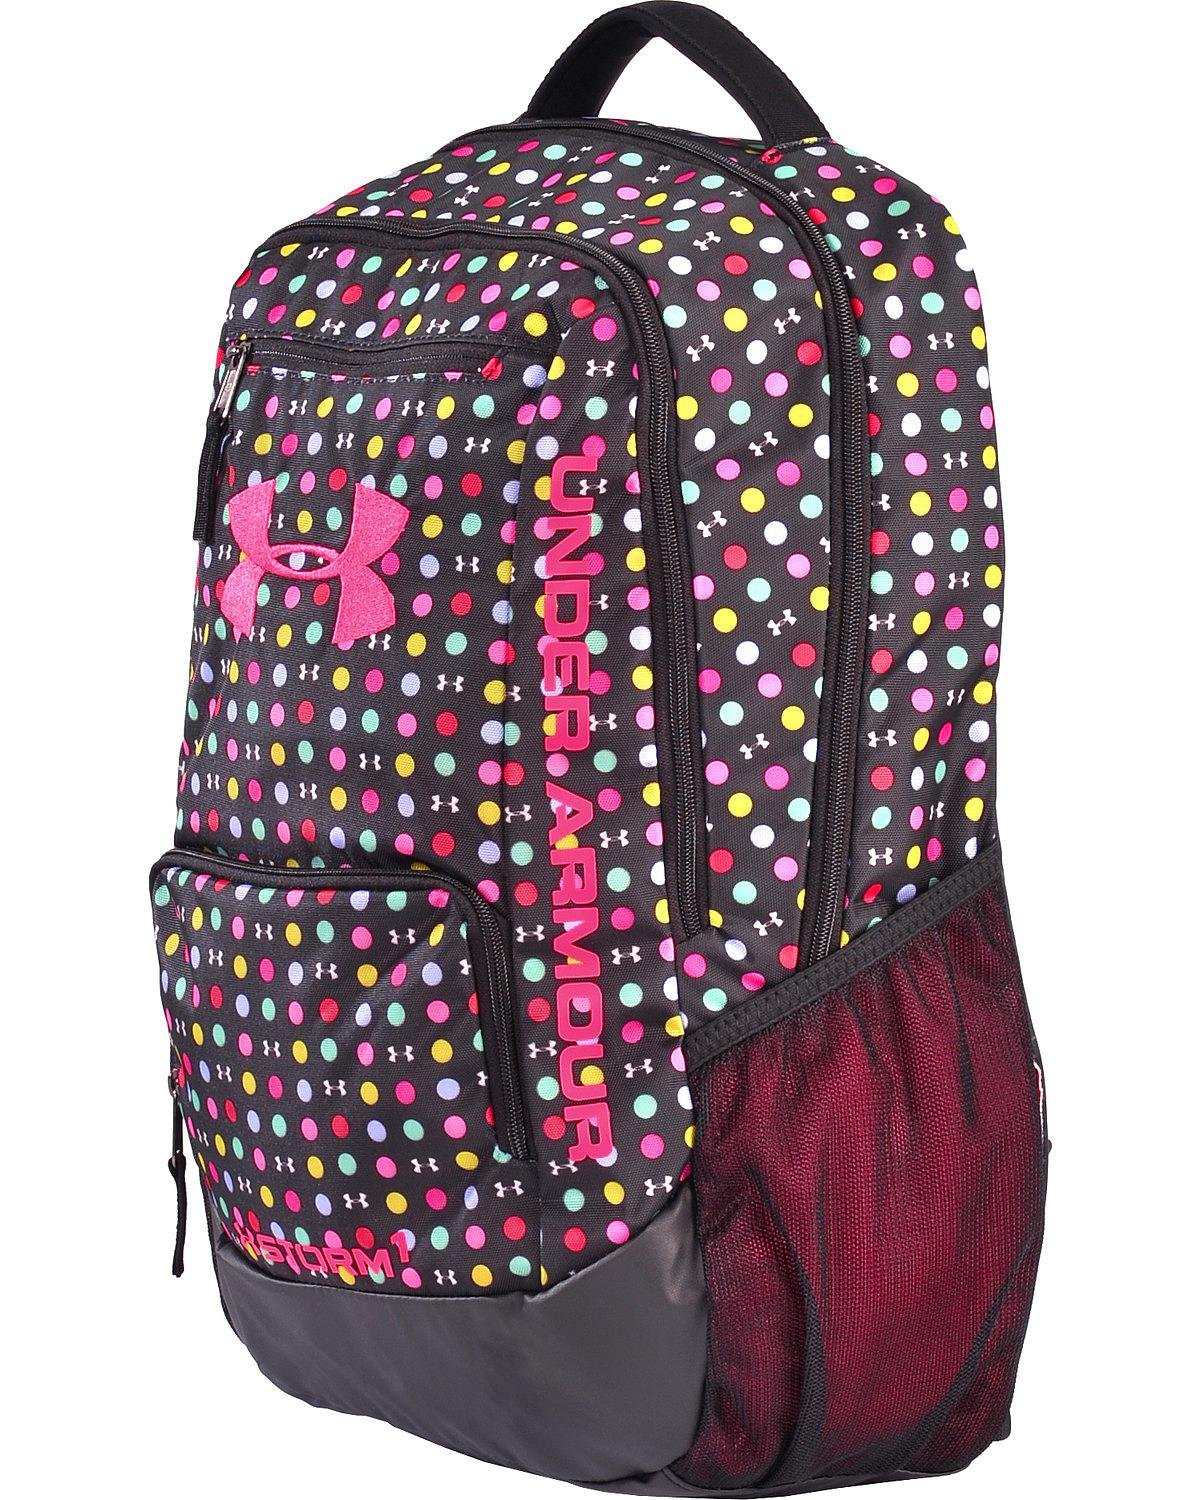 Amazon.com: Under Armour Girls Storm Hustle Ii Backpack Black One Size: Sports & Outdoors